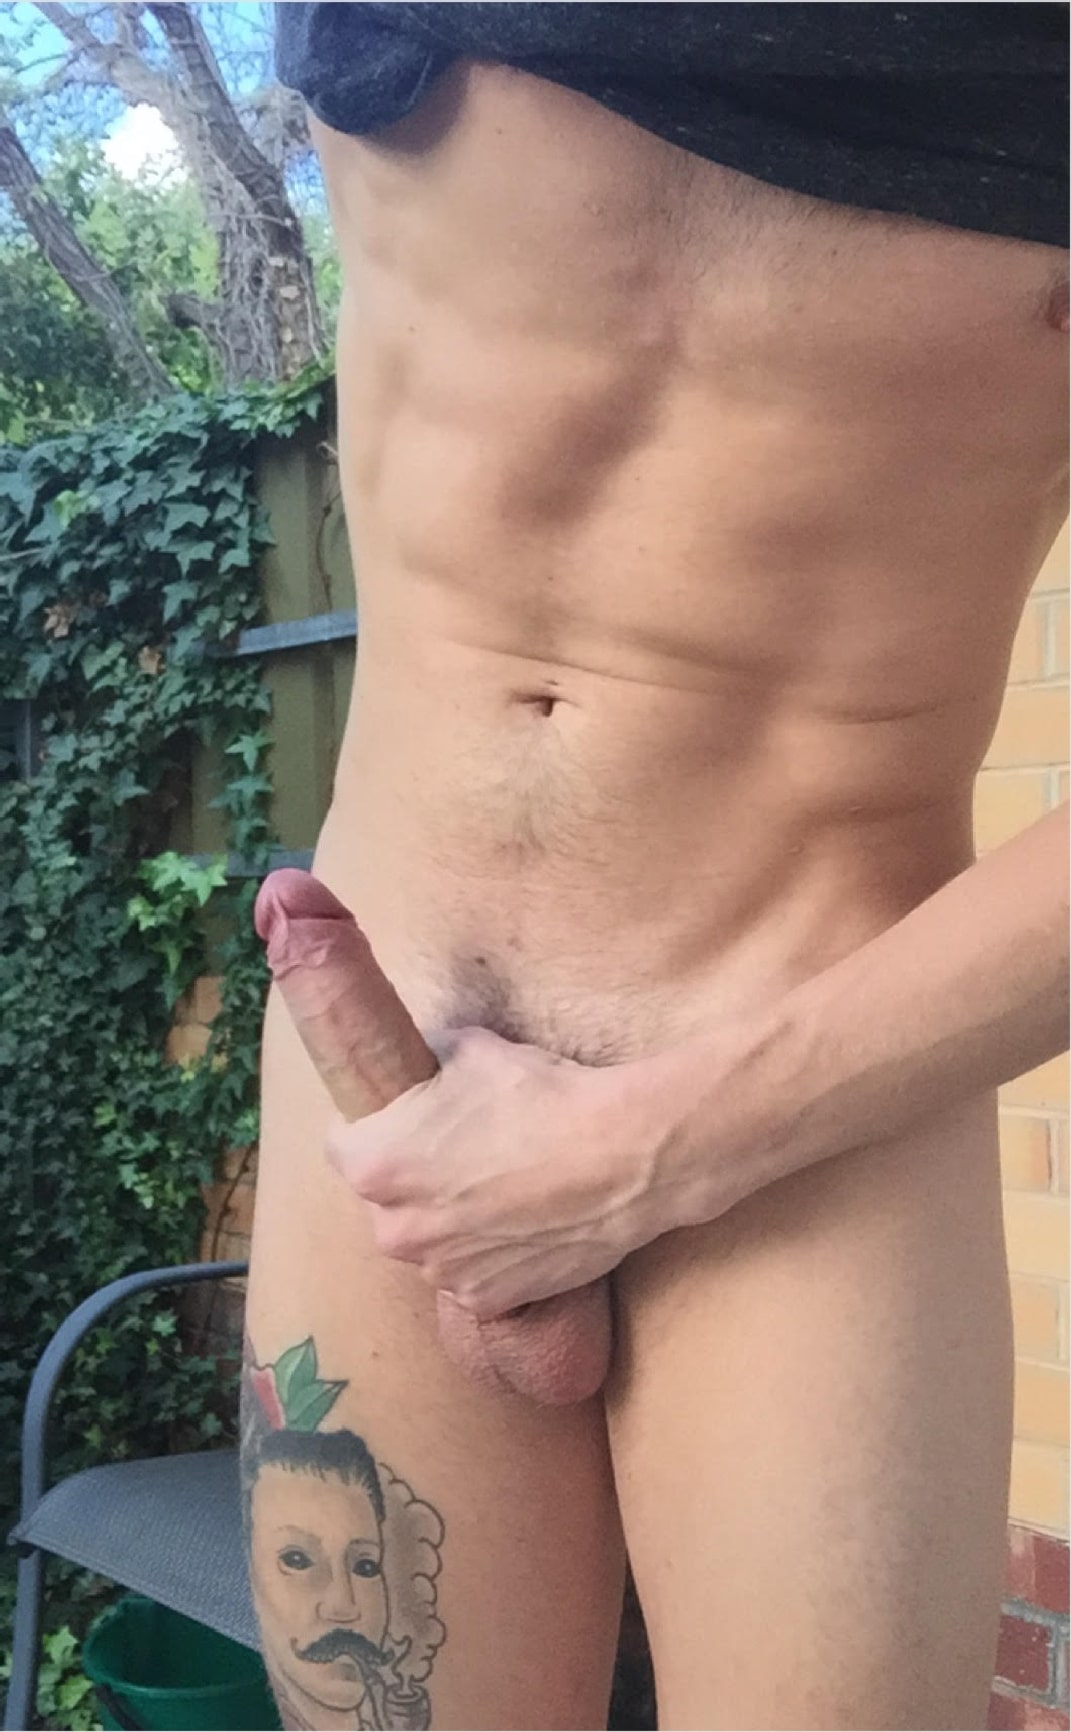 Free sexy guys jacking off adult videos